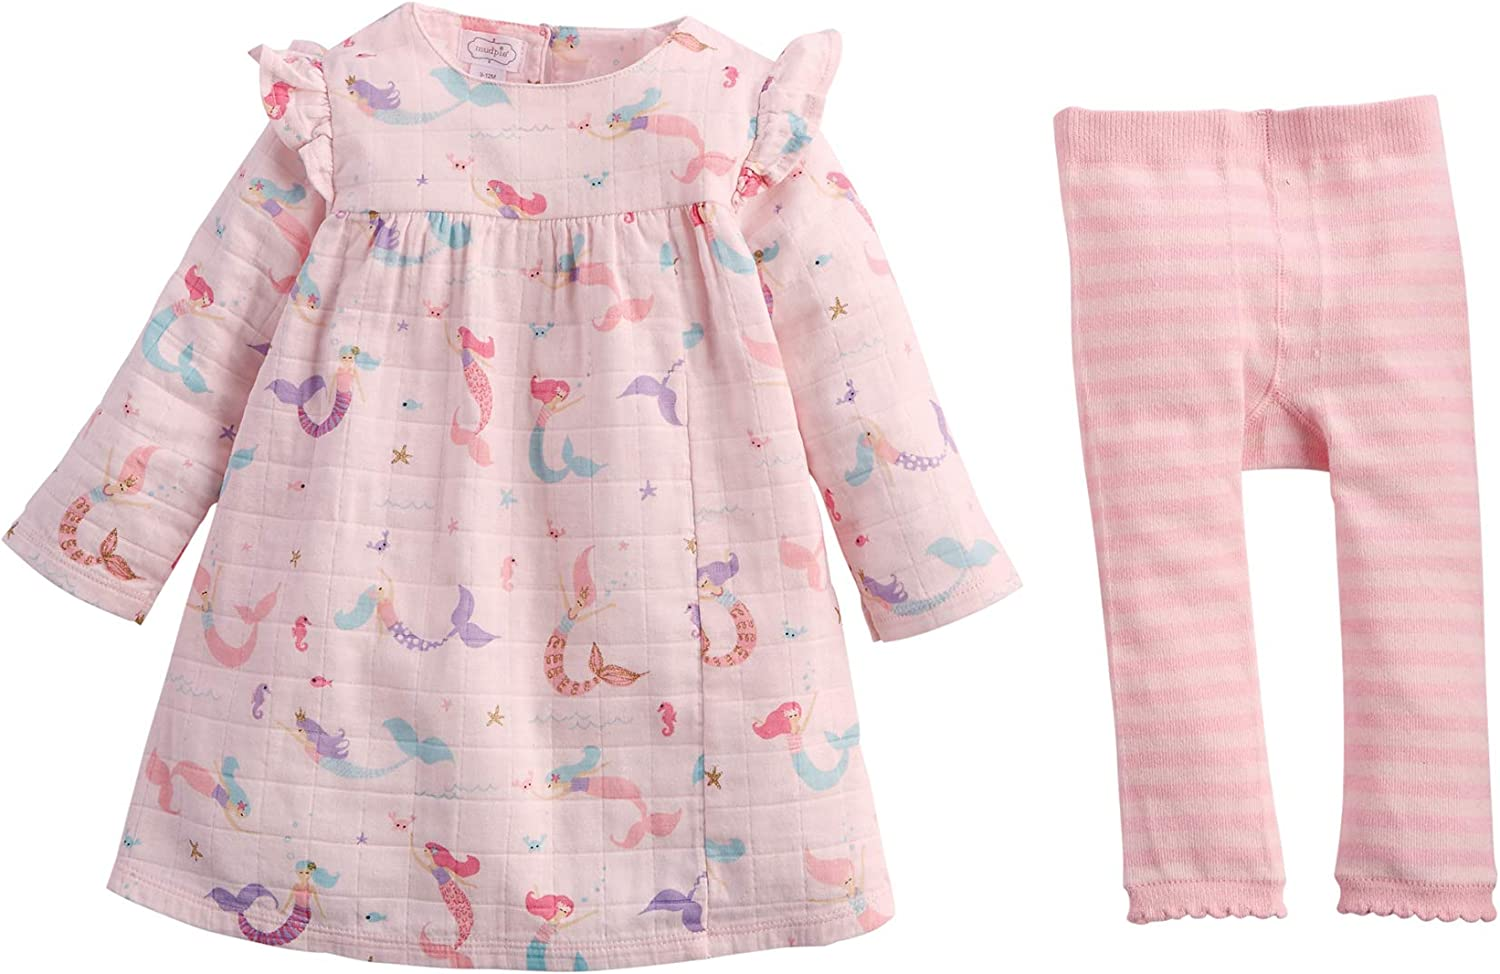 Mud Pie 2021new shipping free shipping Baby Girls' Direct store Classic